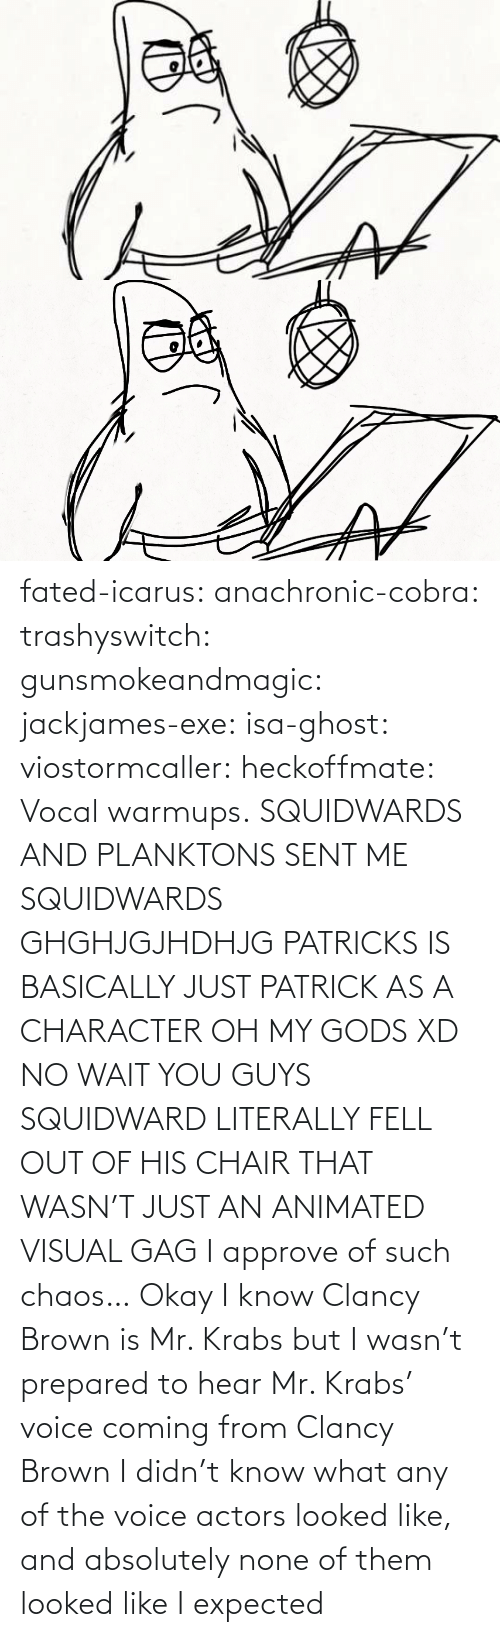 out: fated-icarus:  anachronic-cobra: trashyswitch:  gunsmokeandmagic:  jackjames-exe:  isa-ghost:   viostormcaller:  heckoffmate: Vocal warmups. SQUIDWARDS AND PLANKTONS SENT ME  SQUIDWARDS GHGHJGJHDHJG   PATRICKS IS BASICALLY JUST PATRICK AS A CHARACTER OH MY GODS XD   NO WAIT YOU GUYS SQUIDWARD LITERALLY FELL OUT OF HIS CHAIR THAT WASN'T JUST AN ANIMATED VISUAL GAG    I approve of such chaos…    Okay I know Clancy Brown is Mr. Krabs but I wasn't prepared to hear Mr. Krabs' voice coming from Clancy Brown    I didn't know what any of the voice actors looked like, and absolutely none of them looked like I expected